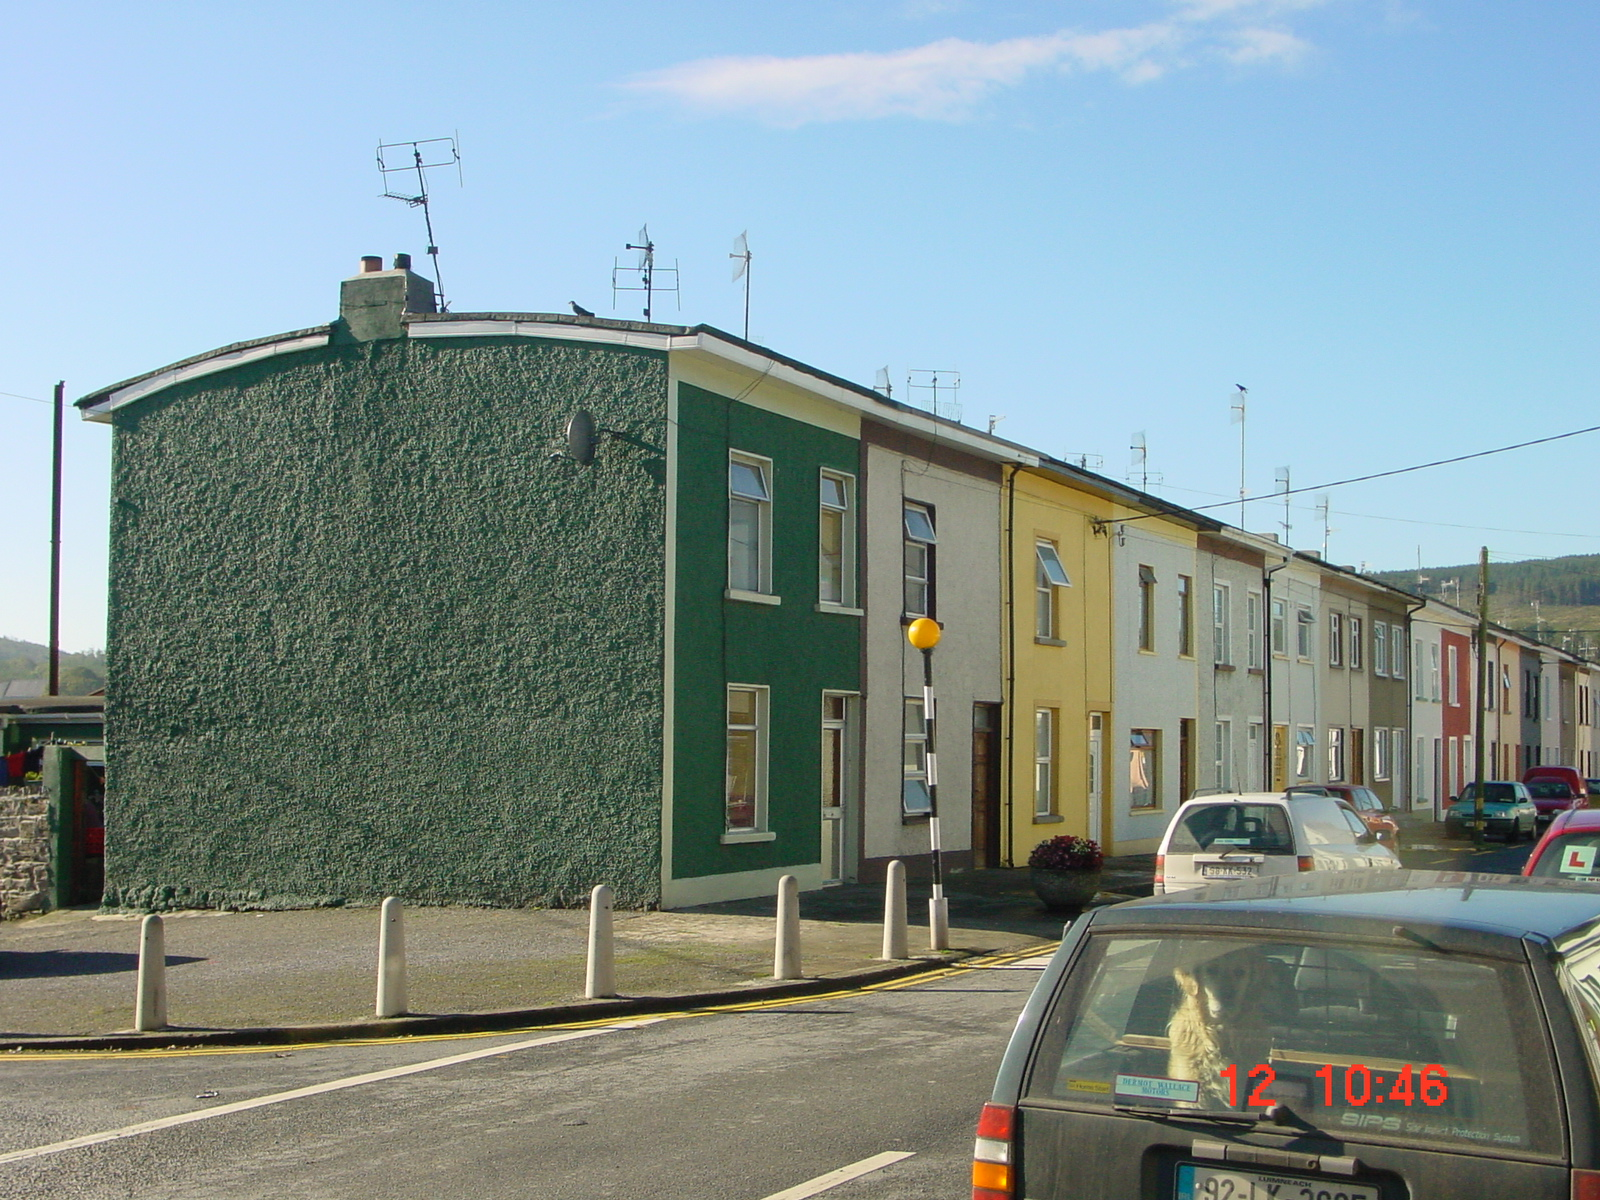 Portlaw roofs